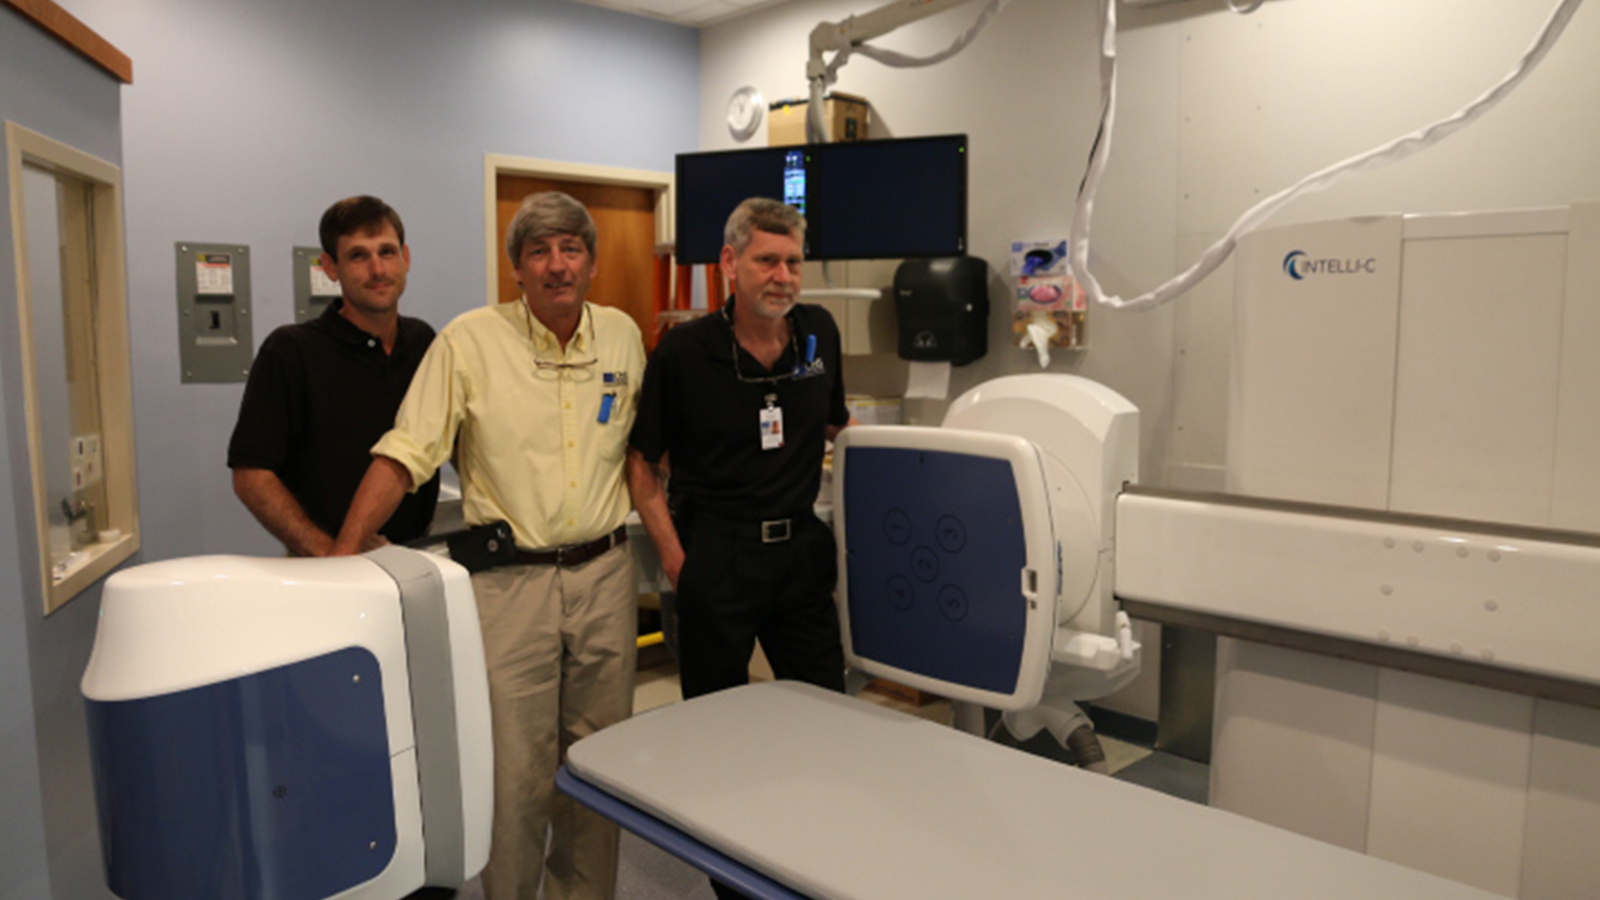 CMS Imaging, Inc. - ImageCare, Columbia, SC - Alpha Imaging Intelli-C